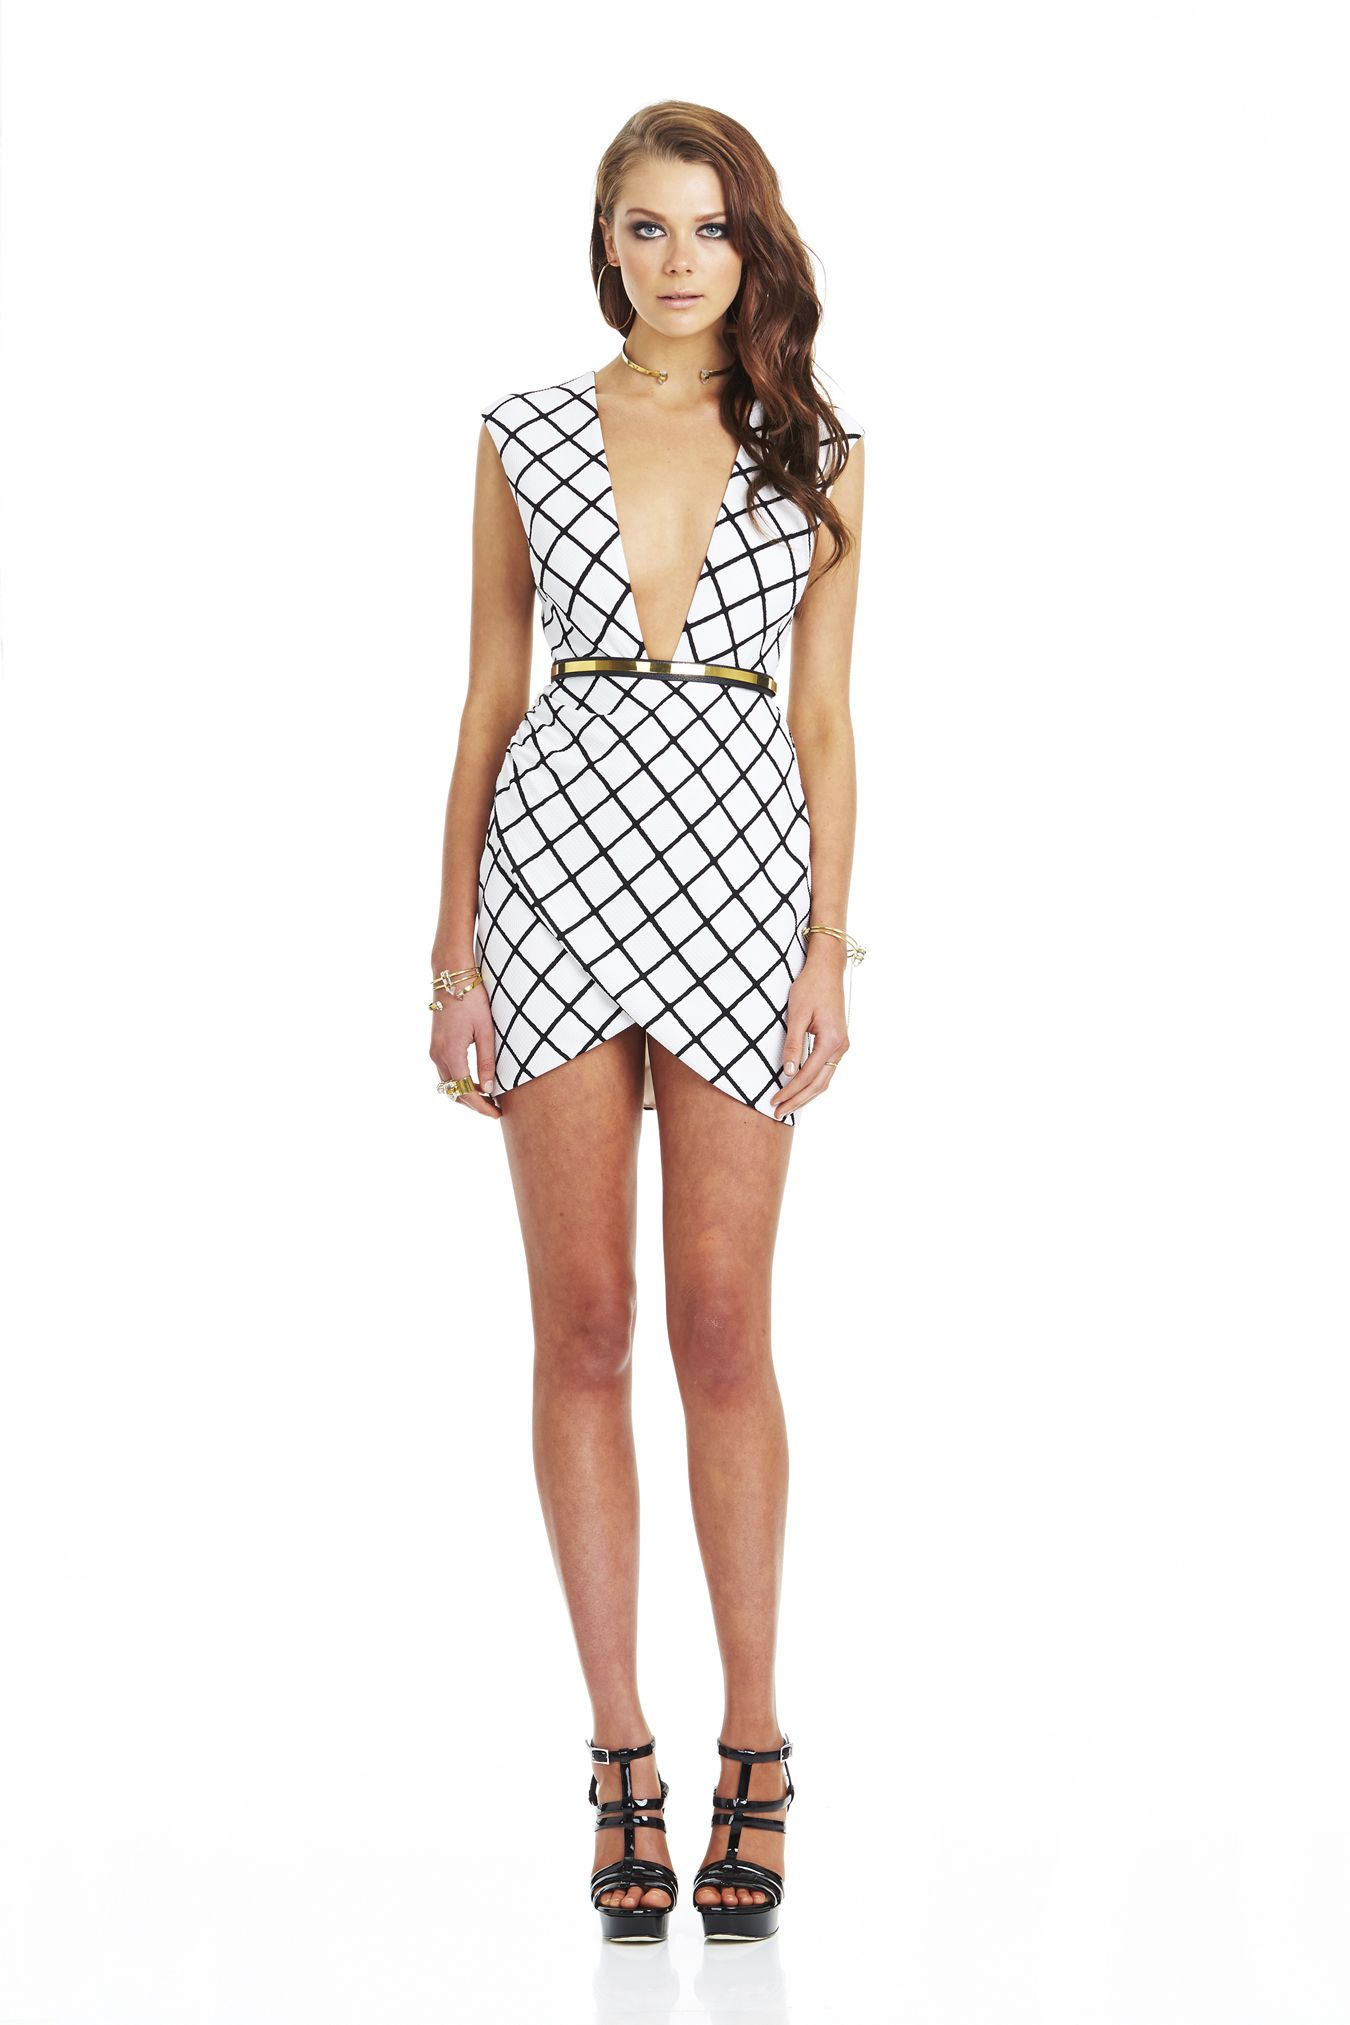 f18cbfe222 NOOKIE BOWIE CHECK LOW CUT SHIFT DRESS WHITE BLACK  209- BELT NOT INCLUDED  CALL SPLASH TO ORDER 314-721-6442